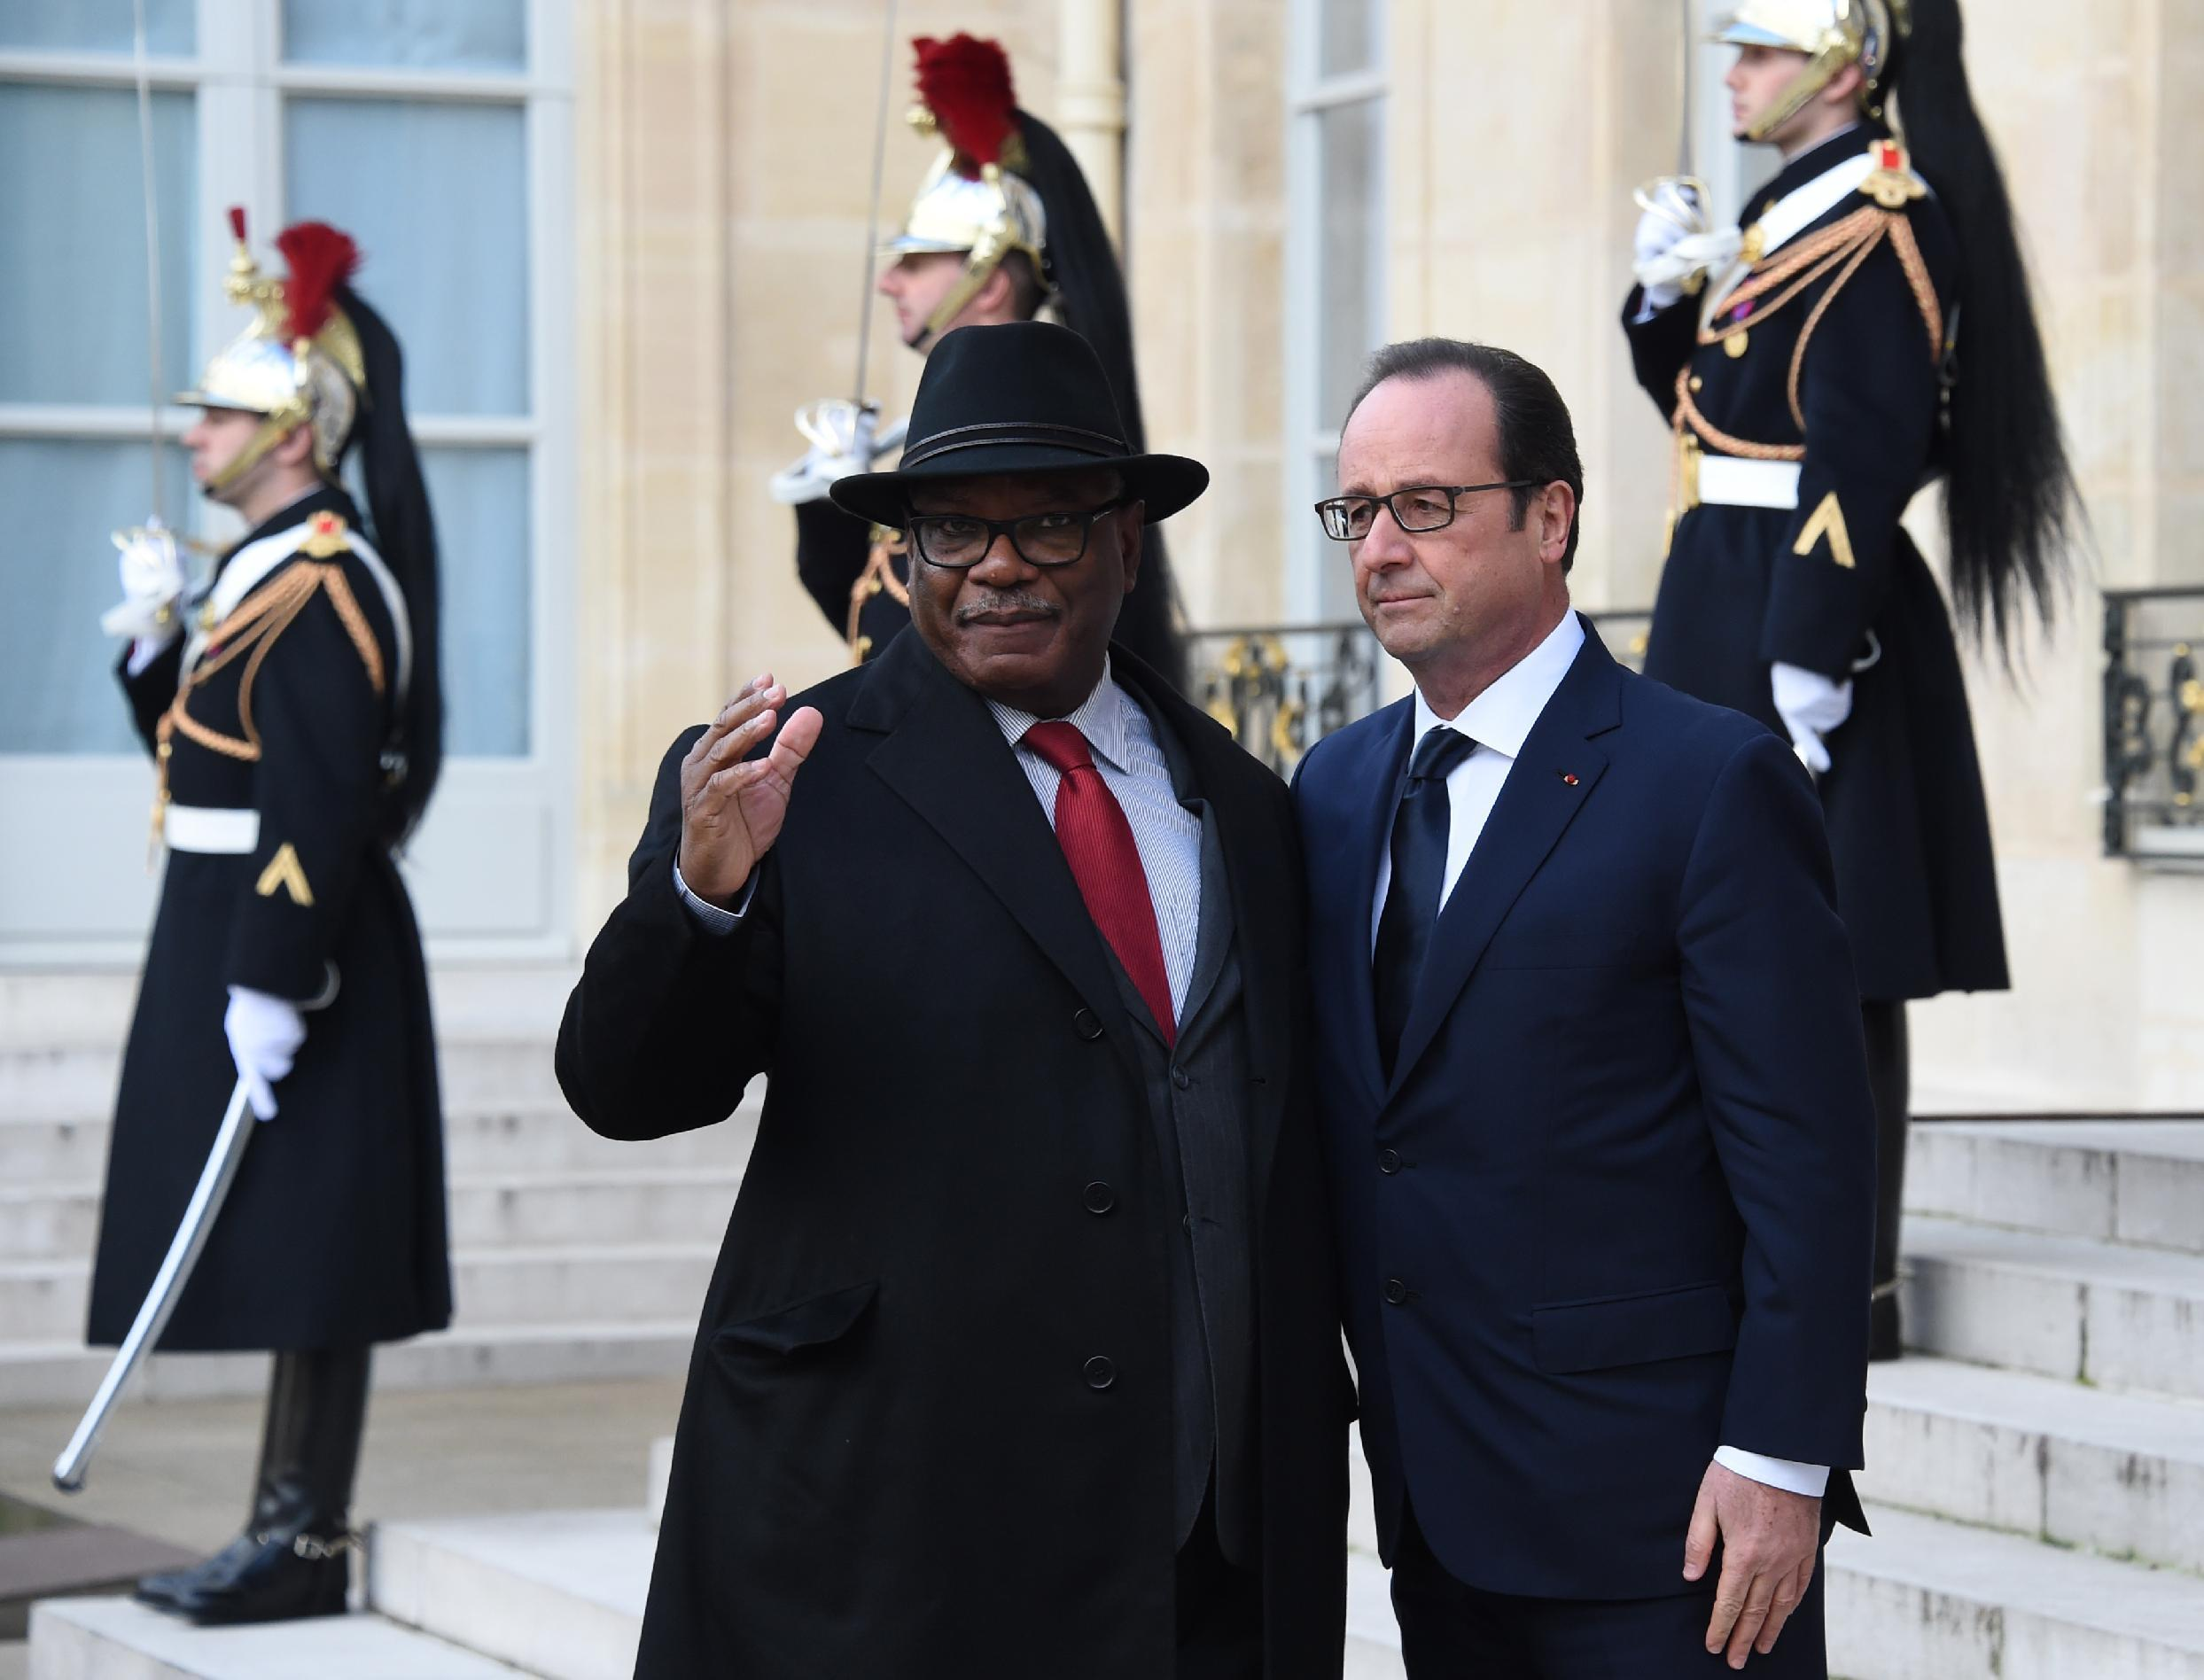 """French President Francois Hollande (R) welcomes Malian President Ibrahim Boubacar Keita at the Elysee Palace before attending a Unity rally """"Marche Republicaine"""" on January 11, 2015 in Paris"""